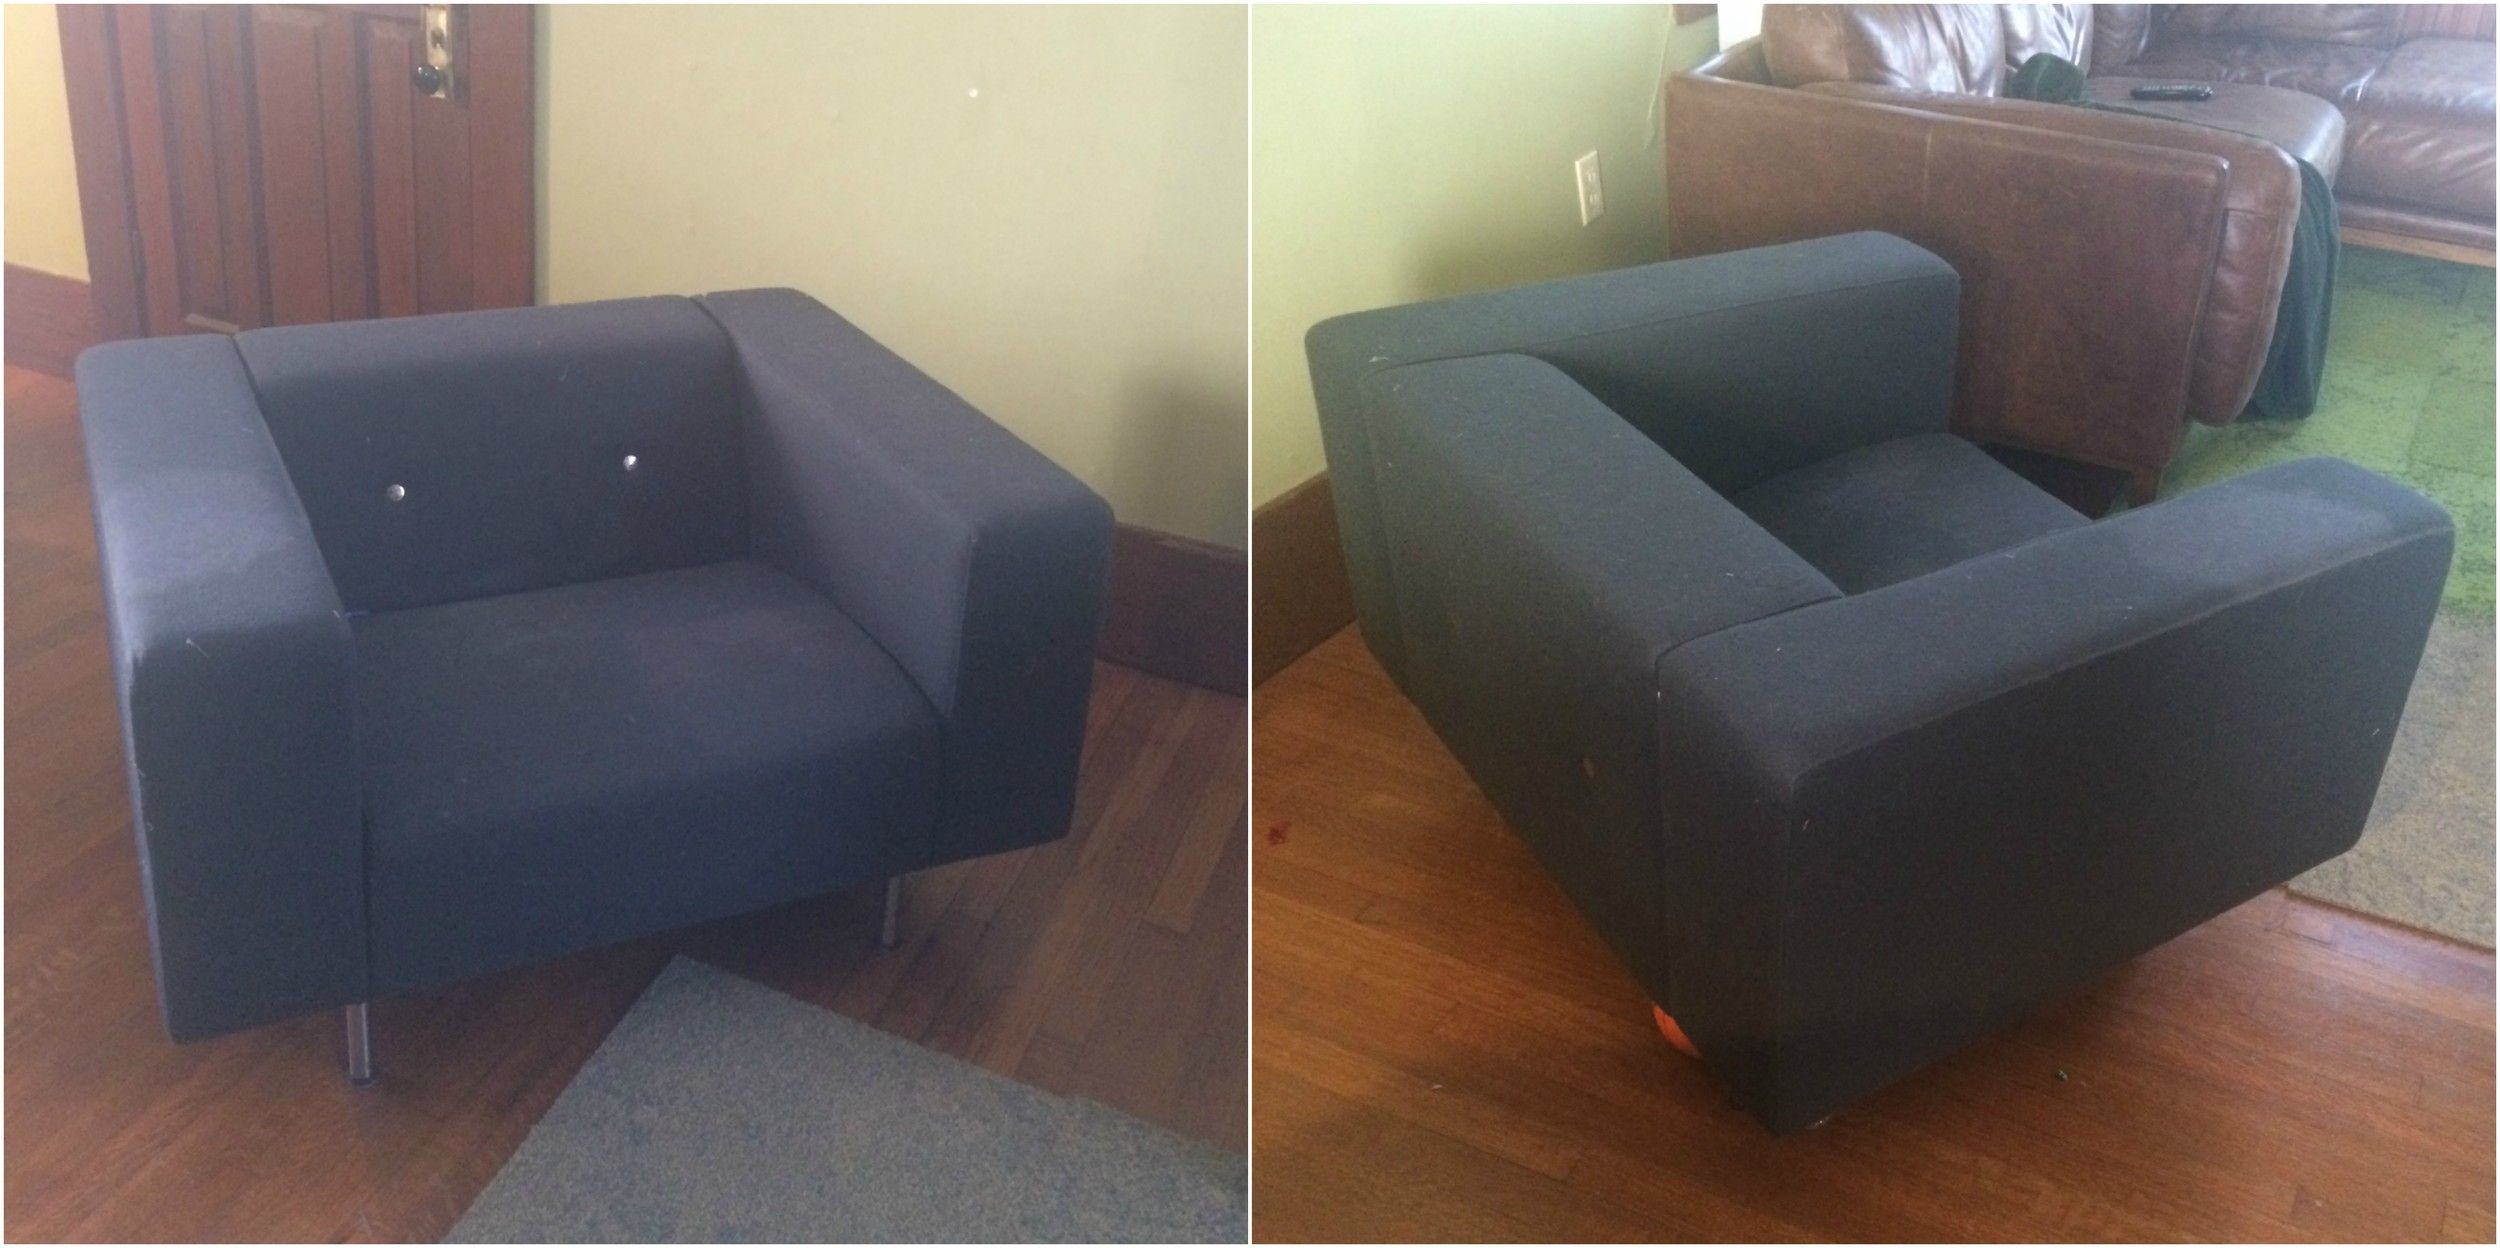 A client's chair before upholstery- sent via email to gain an estimate on labor.